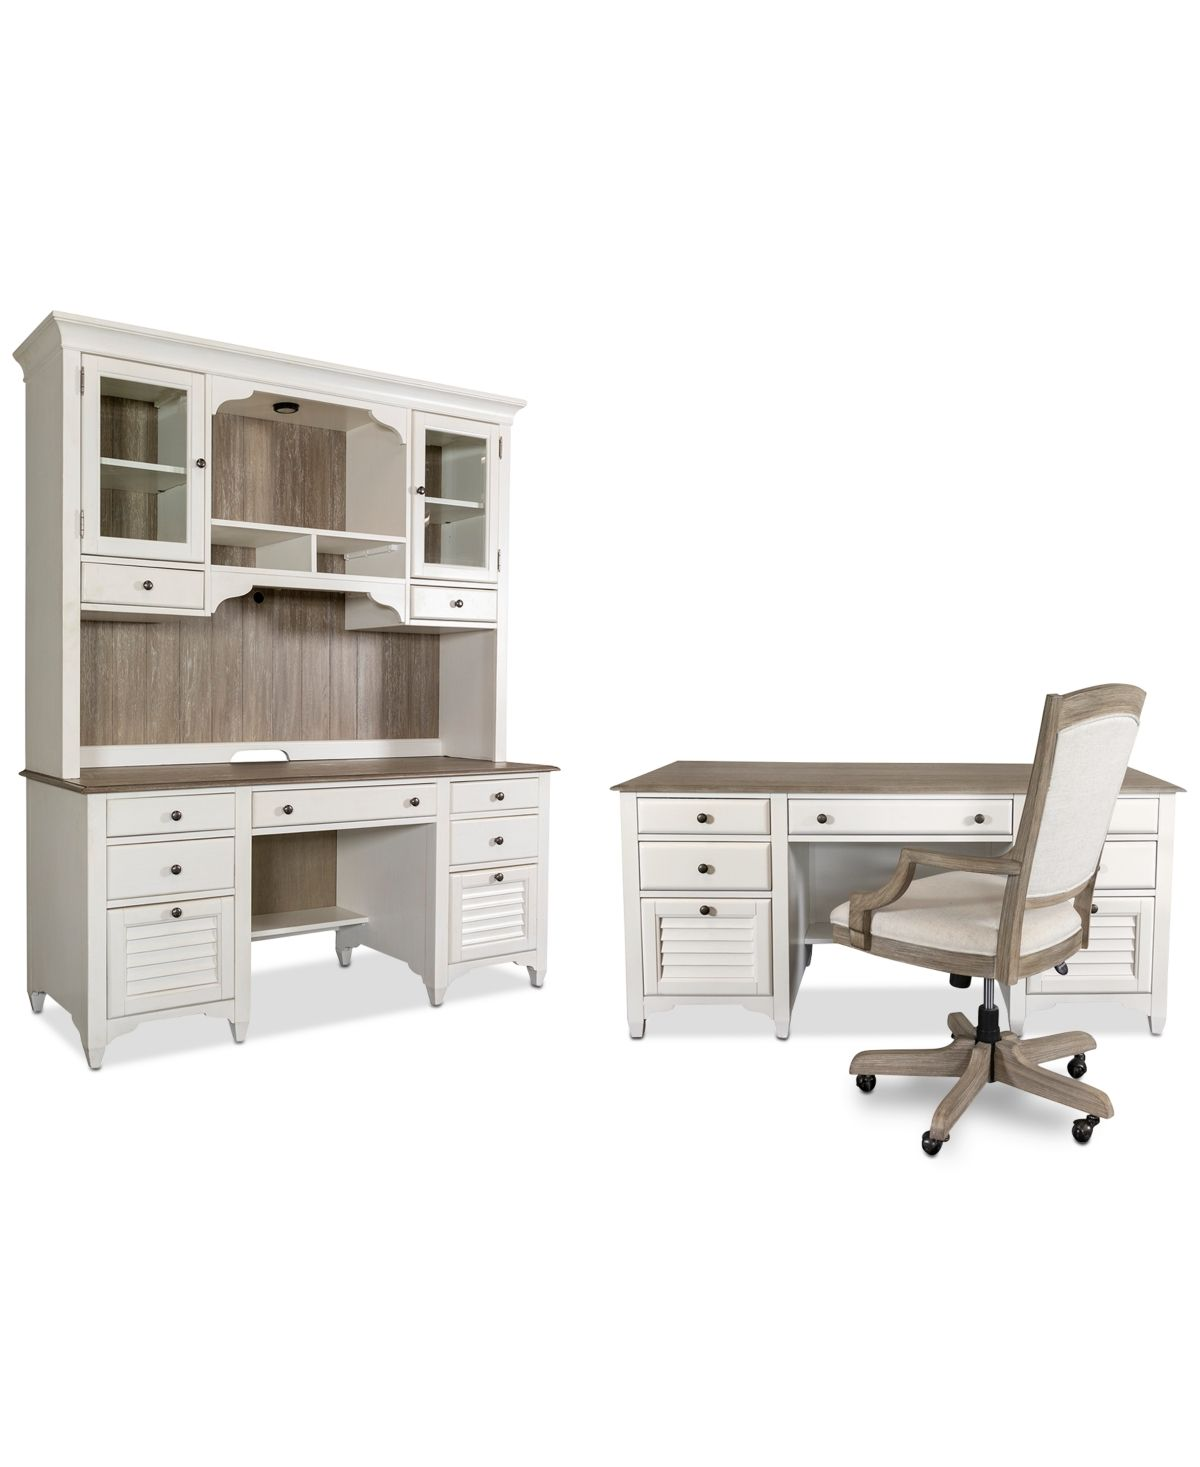 York Two Tone Home Office 4 Pc Furniture Set Two Tone Executive